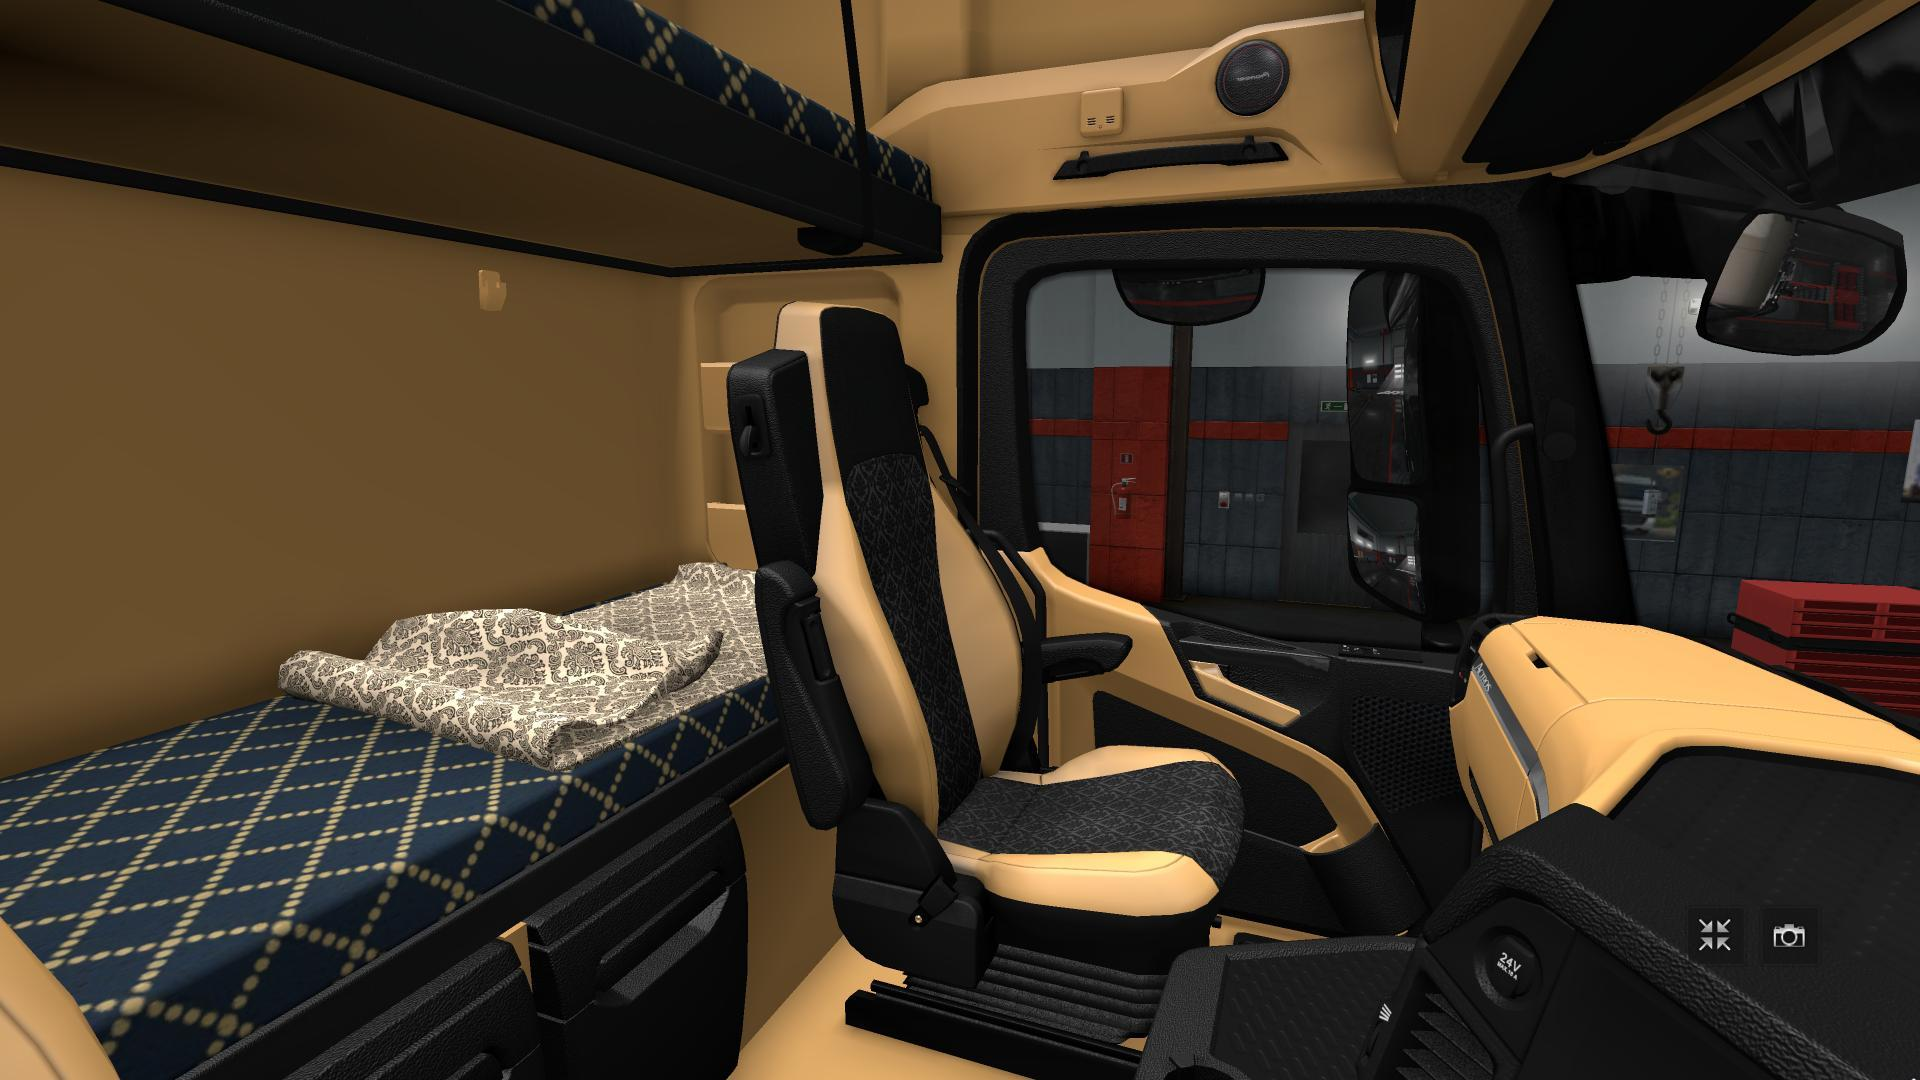 The luxury hd interior for actros mp4 final v1 3 interior mod ets2 mod - Interior hd pic ...